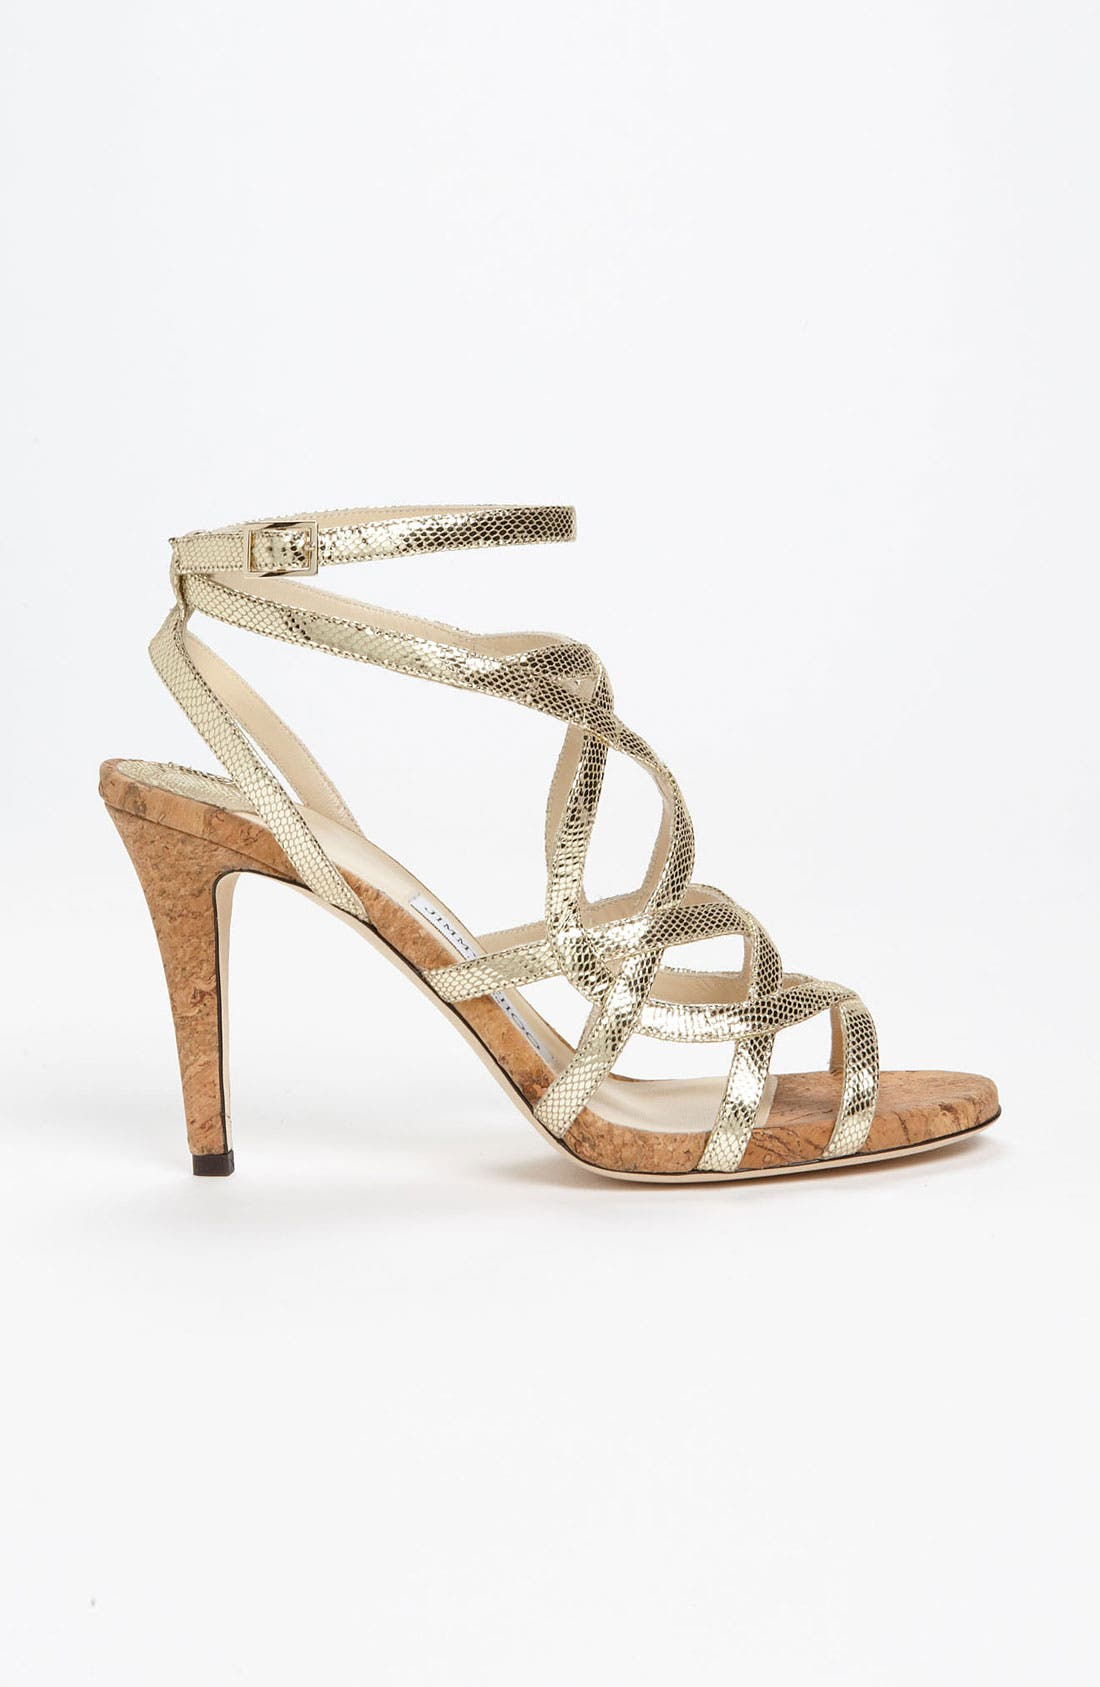 JIMMY CHOO,                             'Deeta' Sandal,                             Alternate thumbnail 2, color,                             710